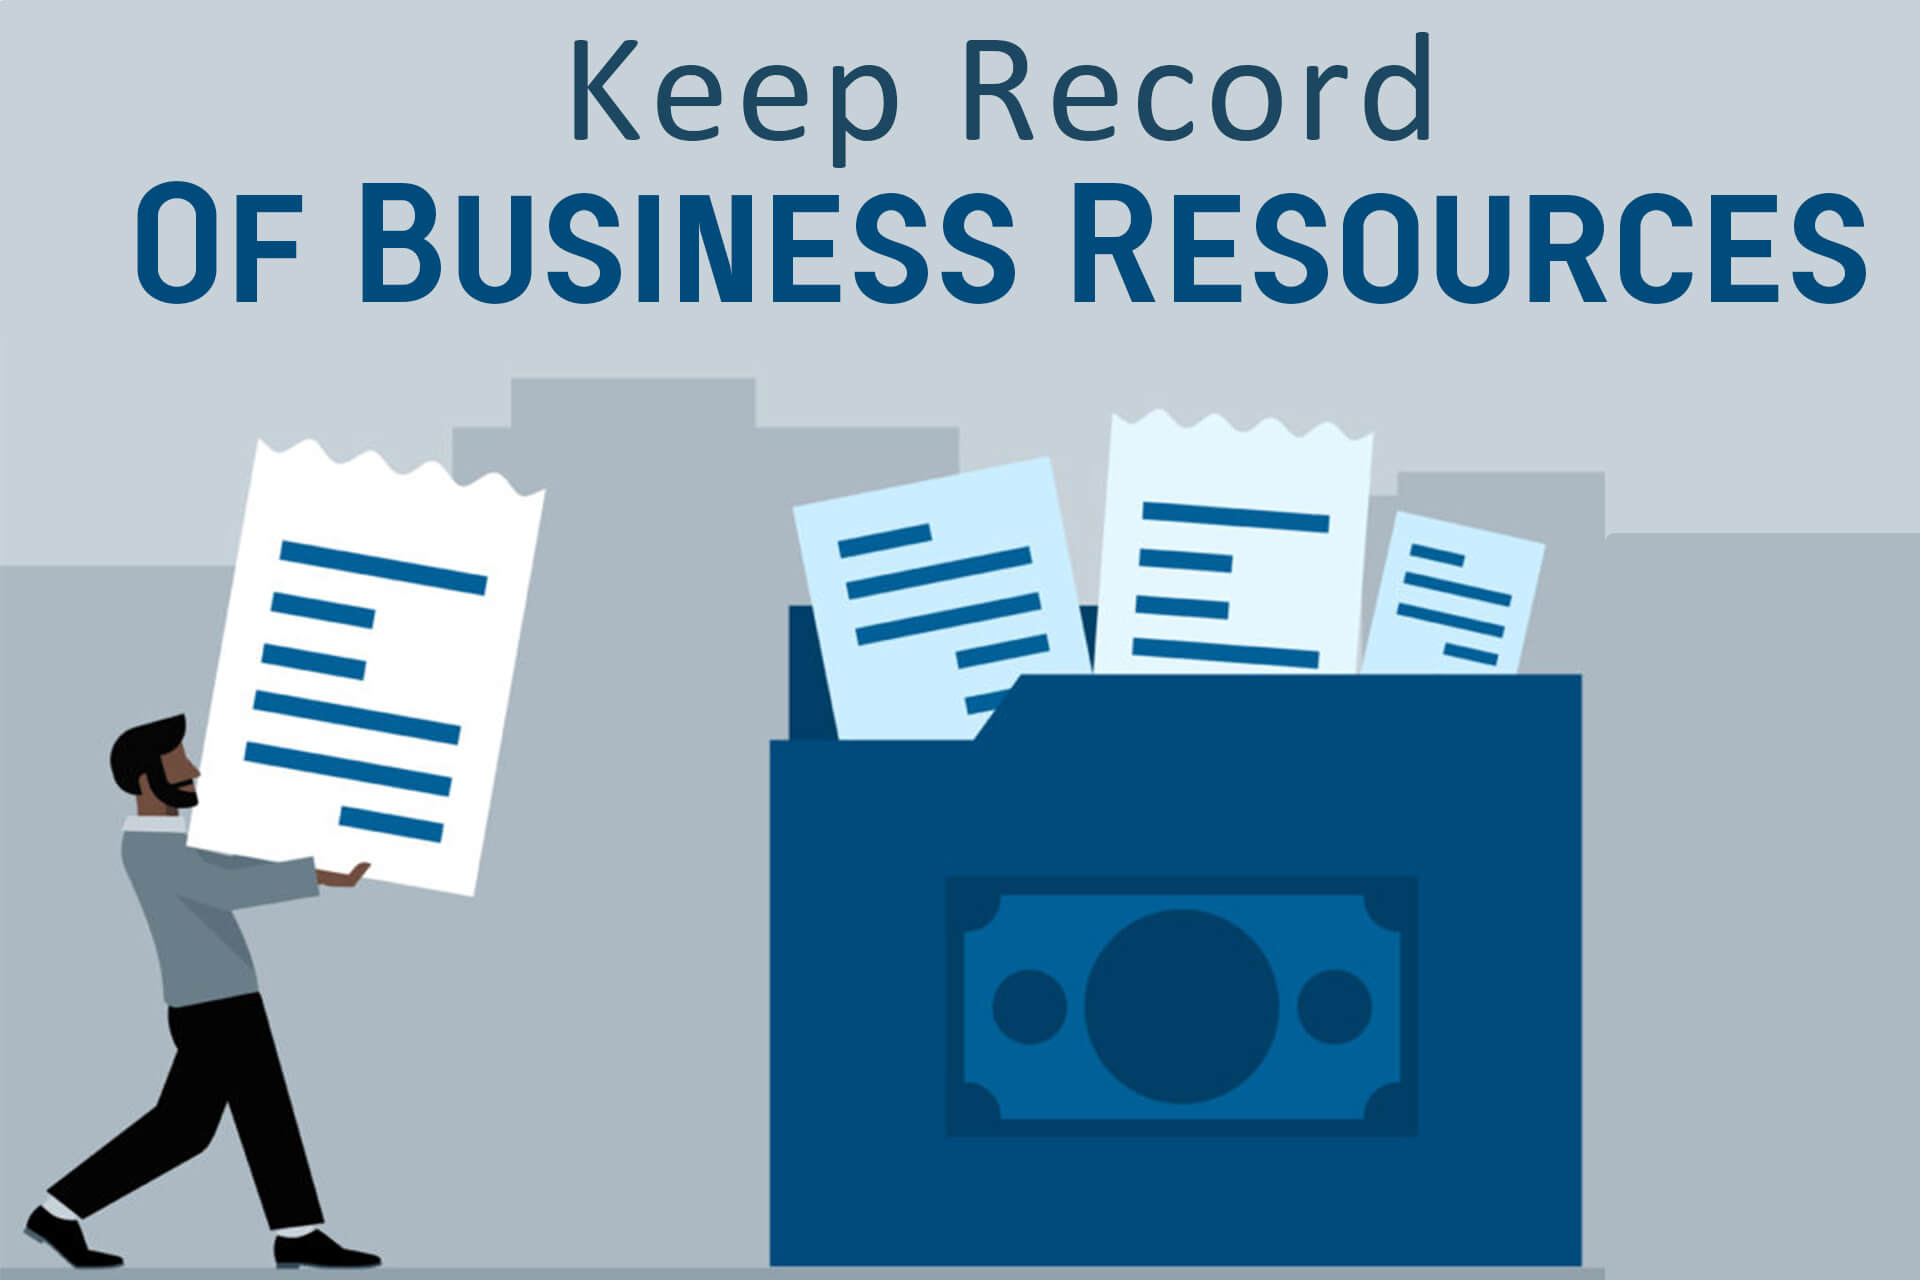 Keep Record Of Business Resources